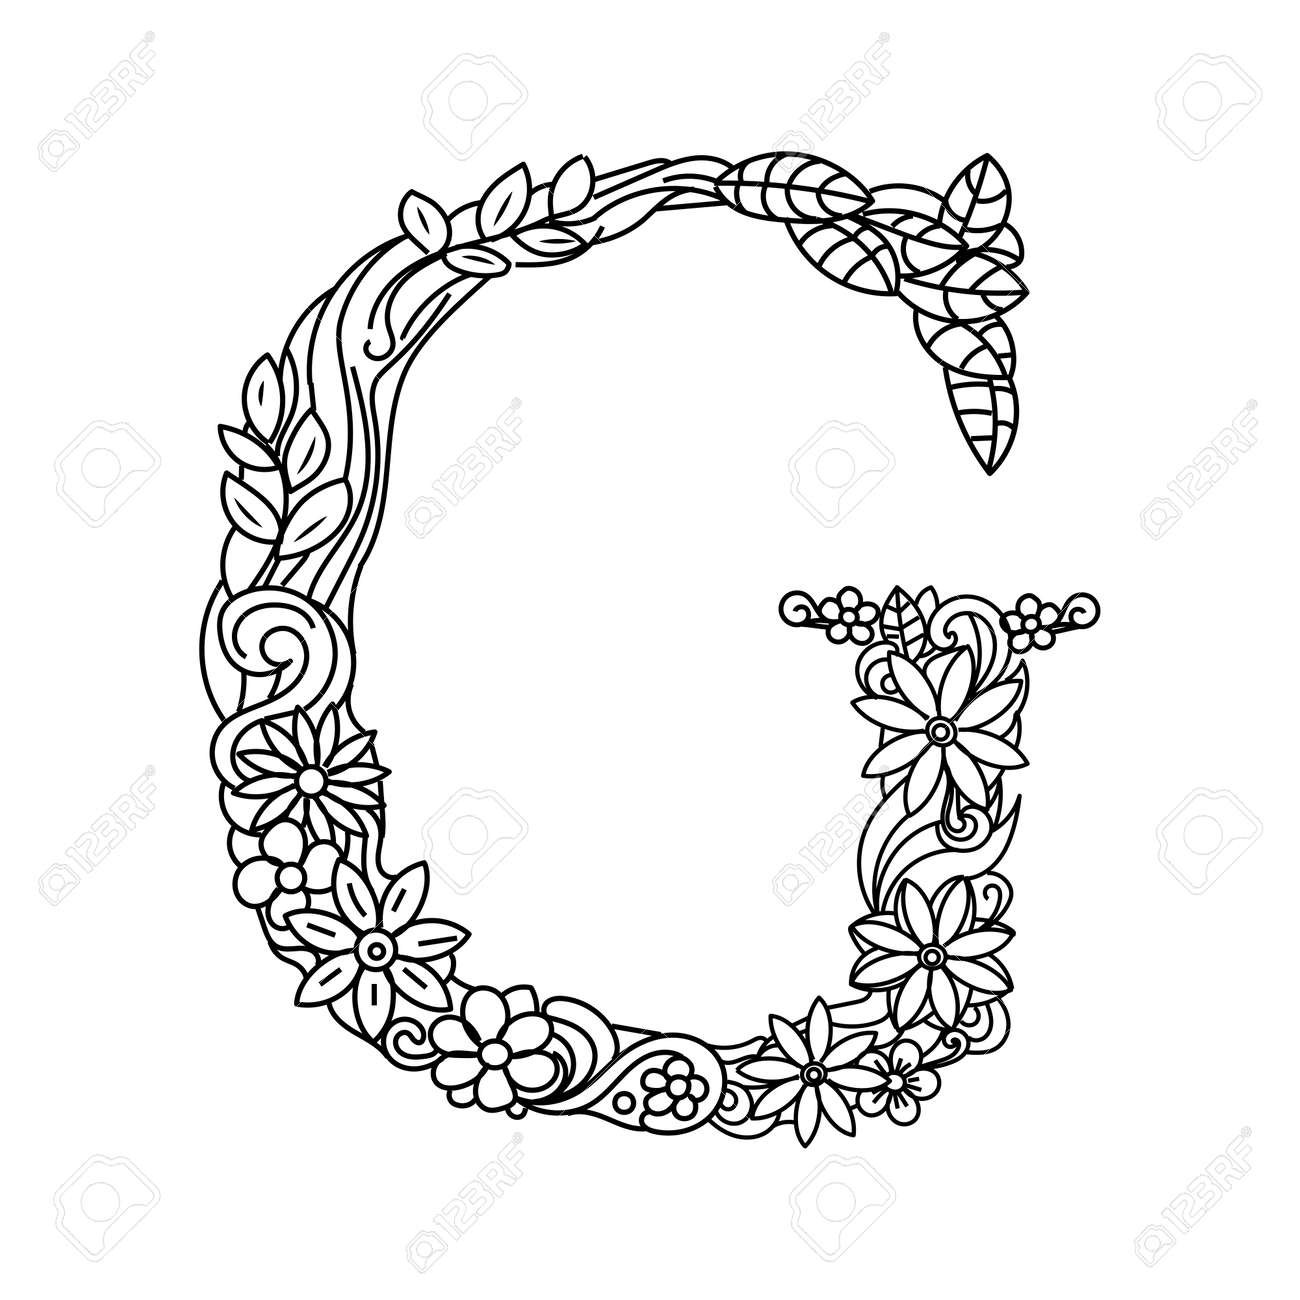 Floral Alphabet Letter Coloring Book For Adults Vector Illustration Stock